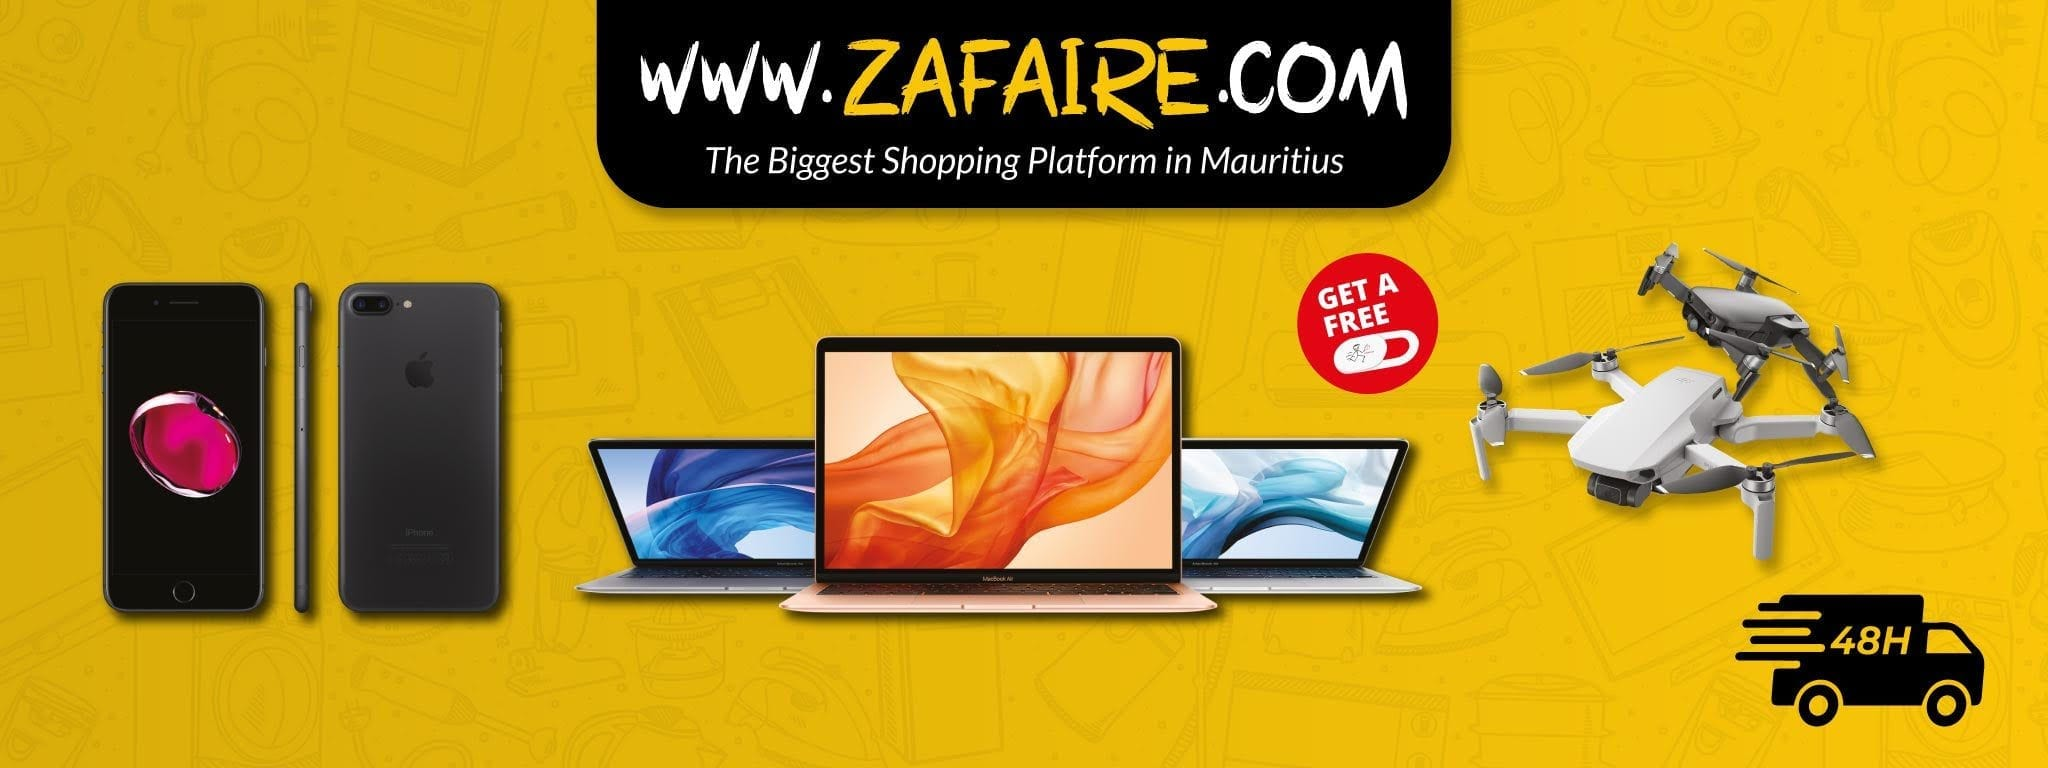 zafaire.com MacBook